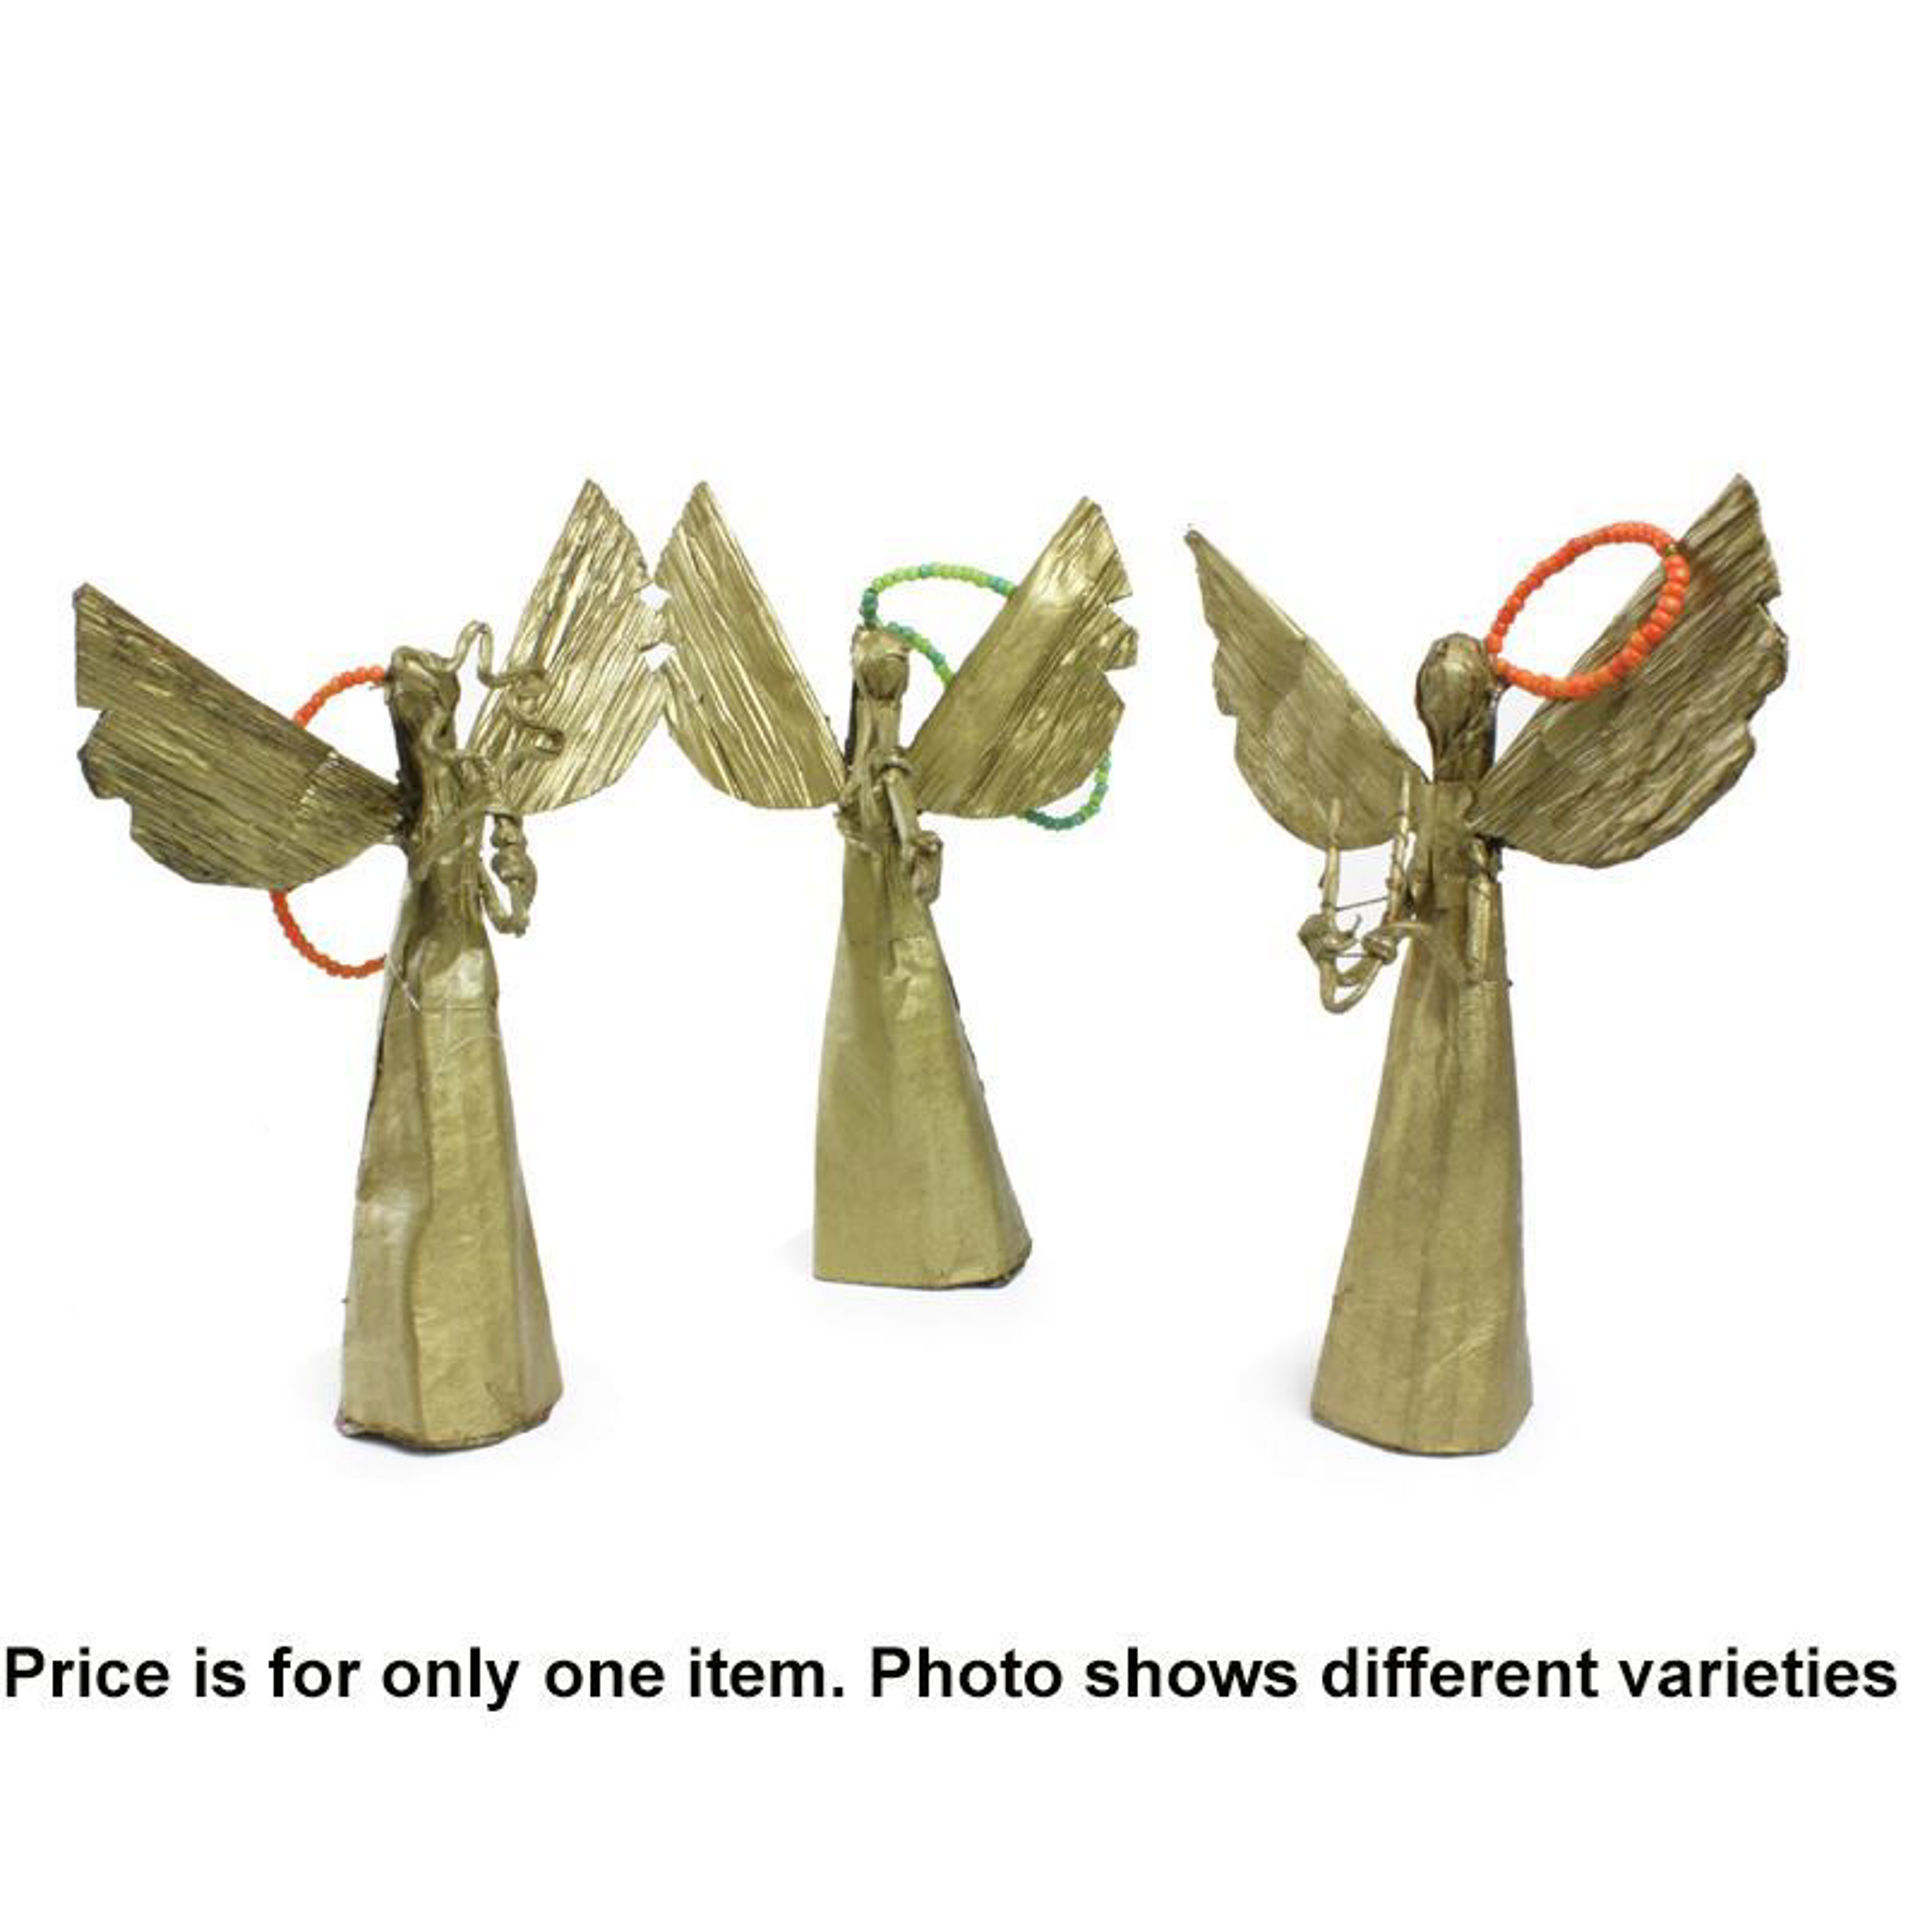 Picture of Banana Leaf Ornaments - Angels